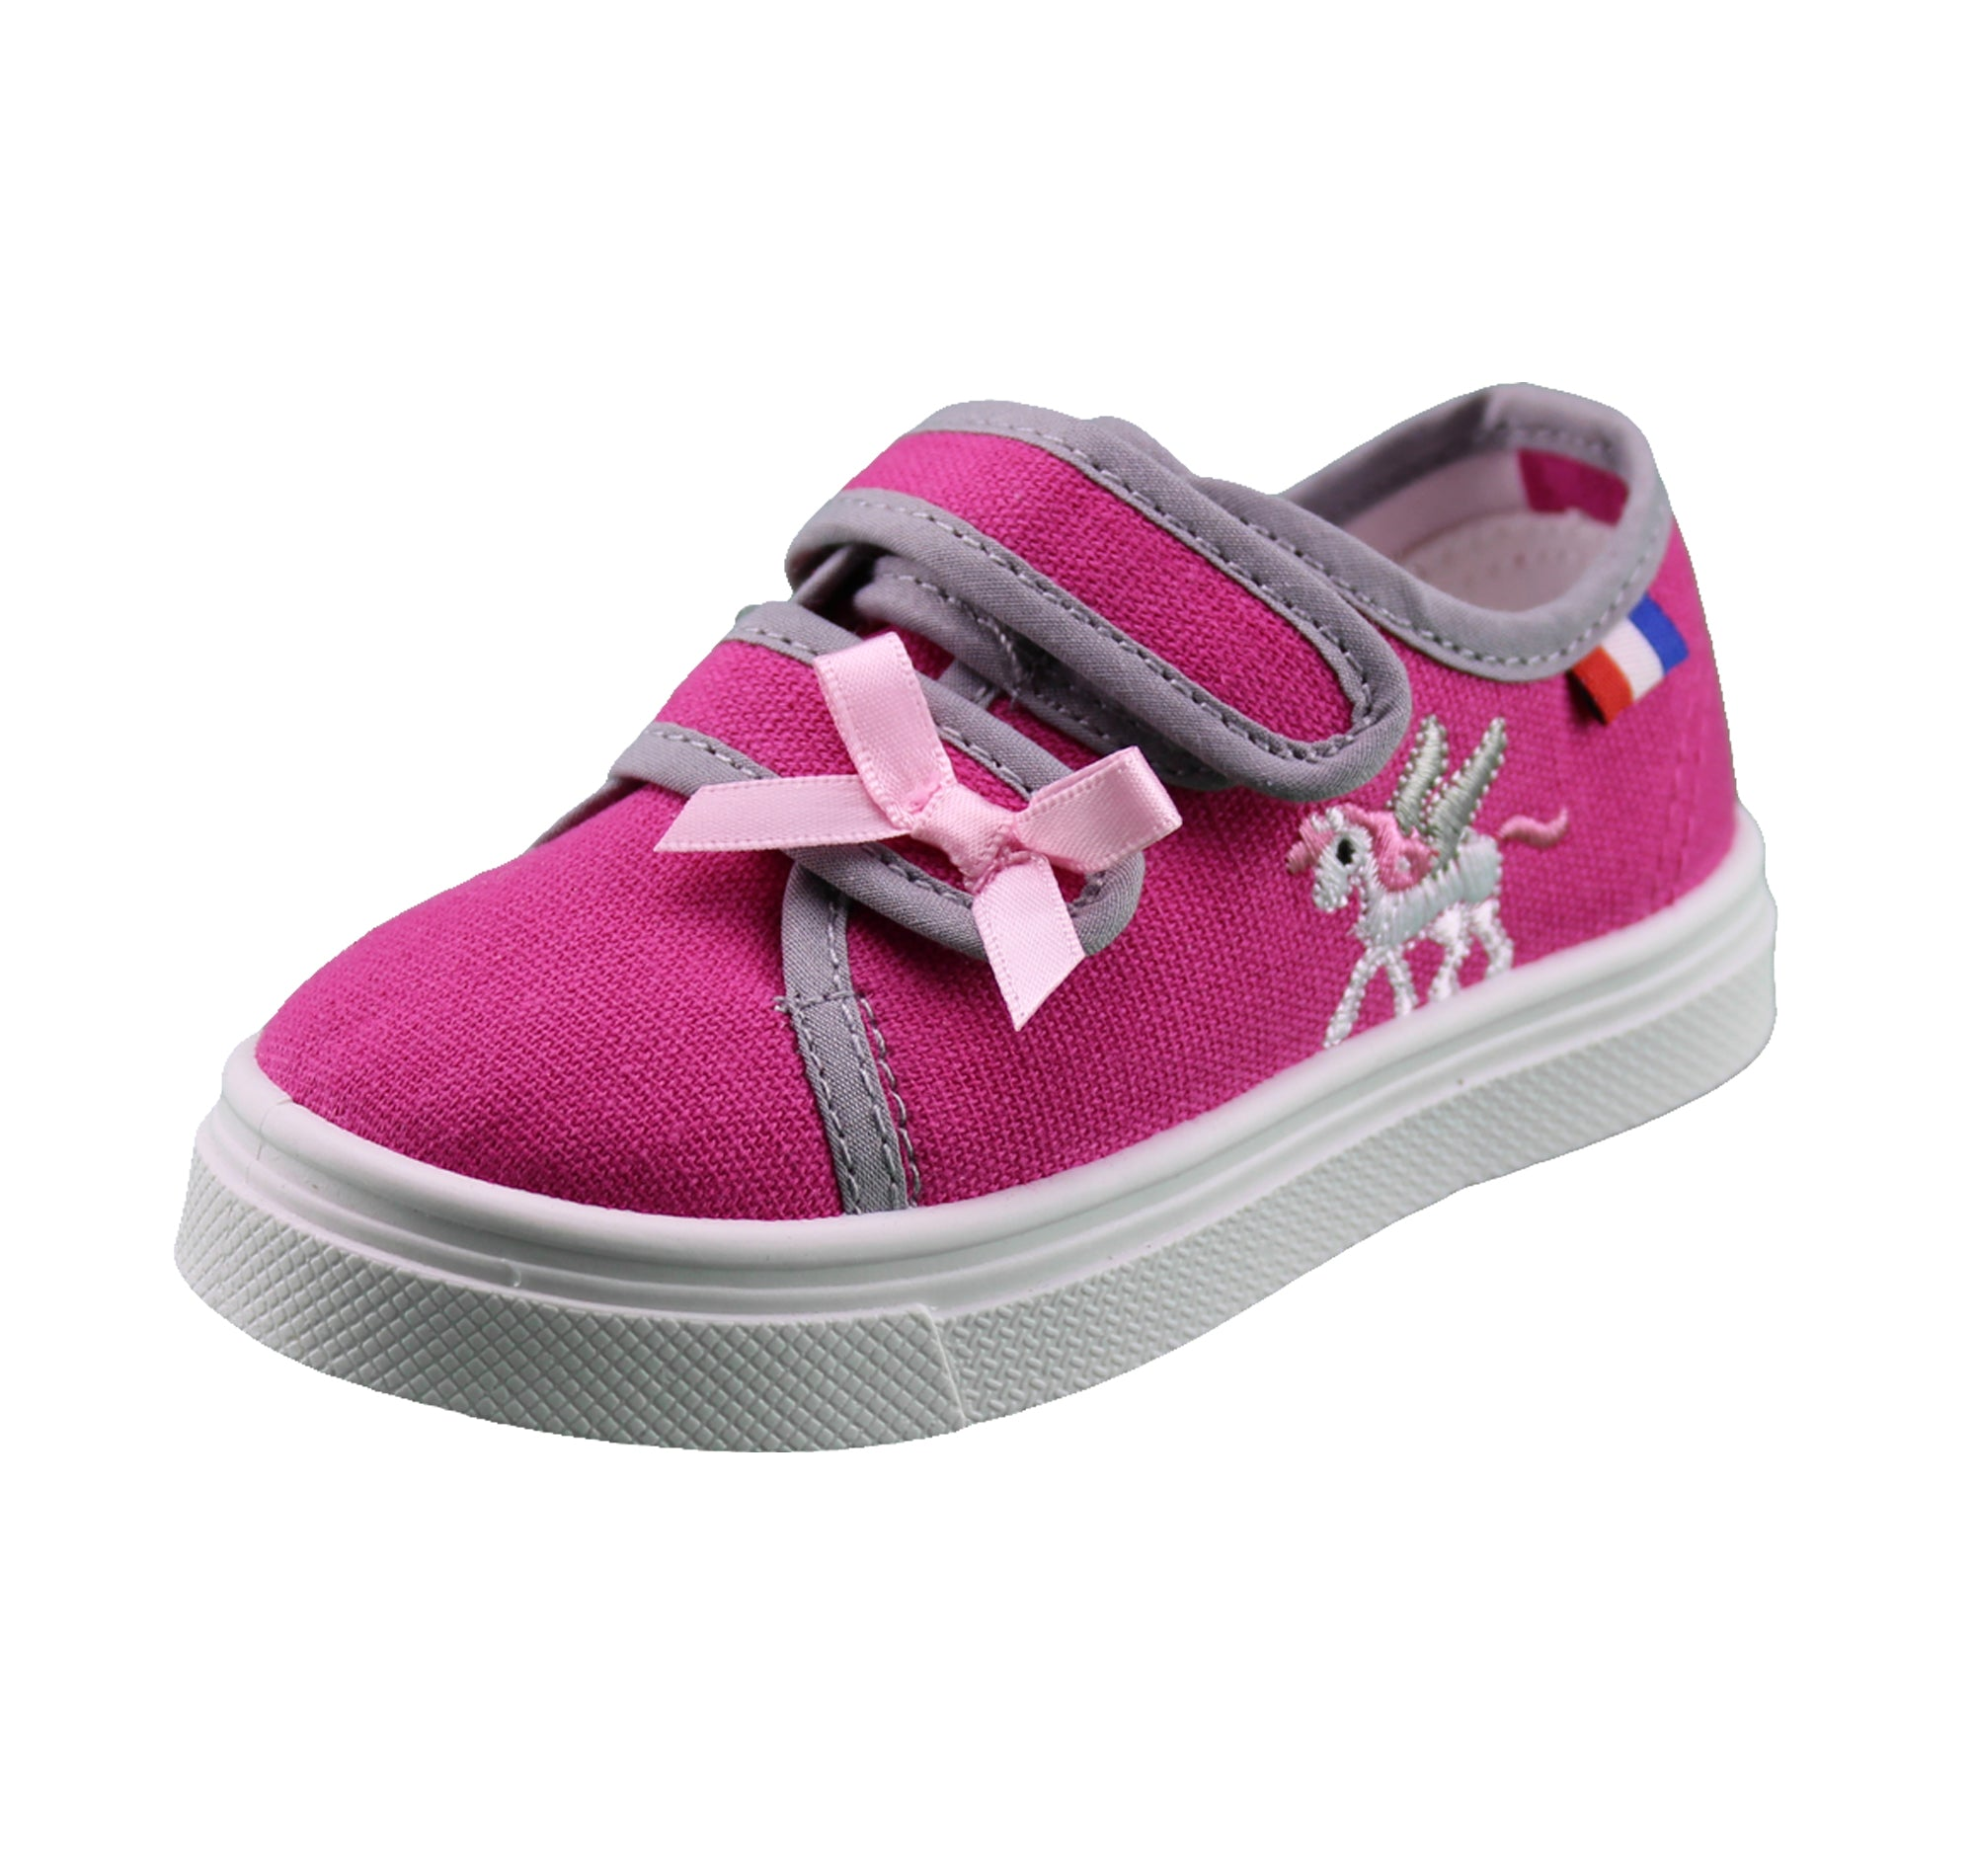 18a7c542c1f1b7 Girls 100% Leather Shoes - Animals - Terracotta - Children shoes ...